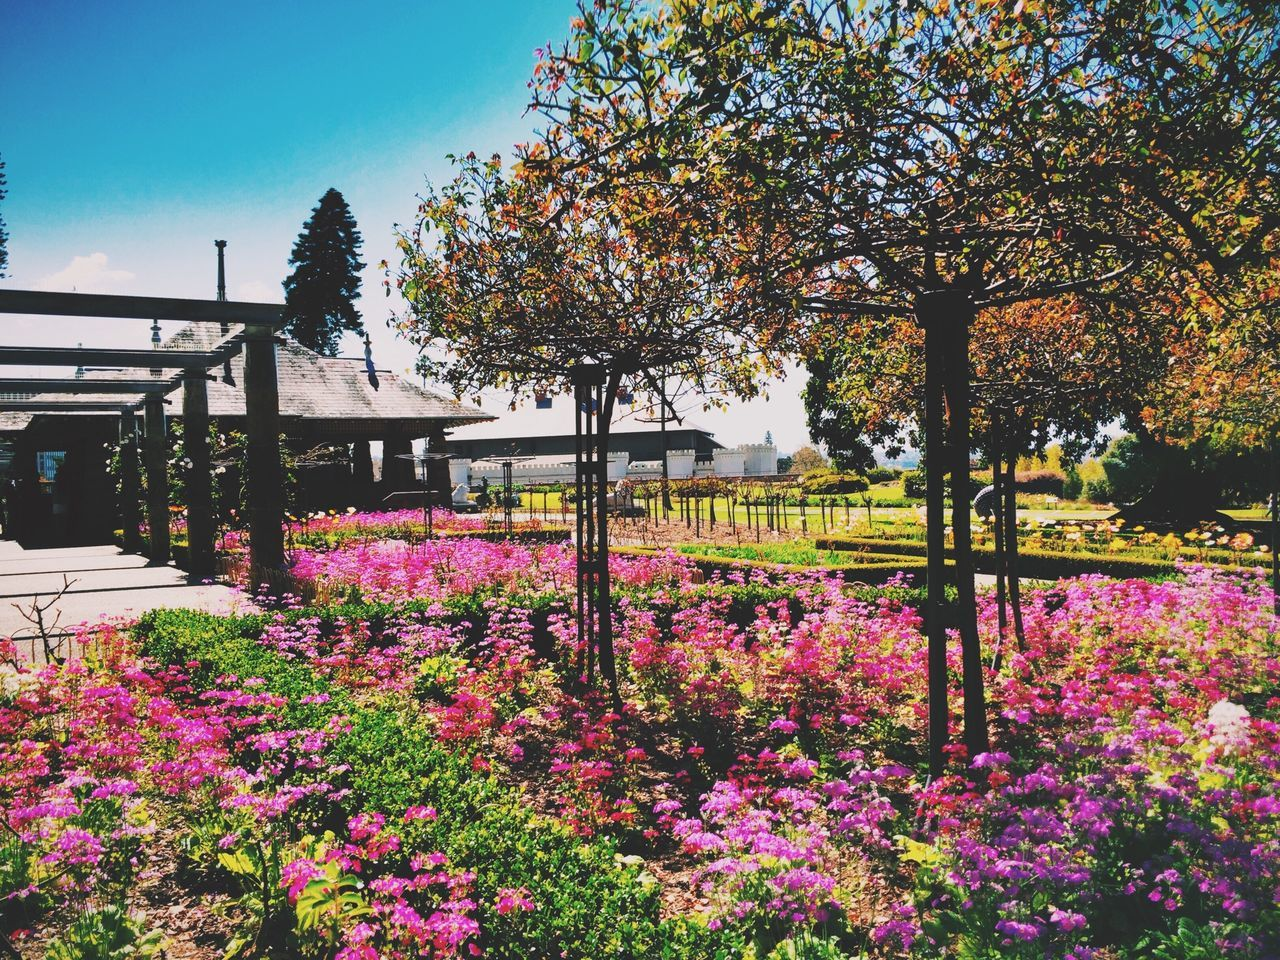 flower, tree, beauty in nature, nature, growth, outdoors, fragility, day, springtime, freshness, no people, plant, blossom, park - man made space, tranquility, tranquil scene, built structure, scenics, blooming, architecture, sky, clear sky